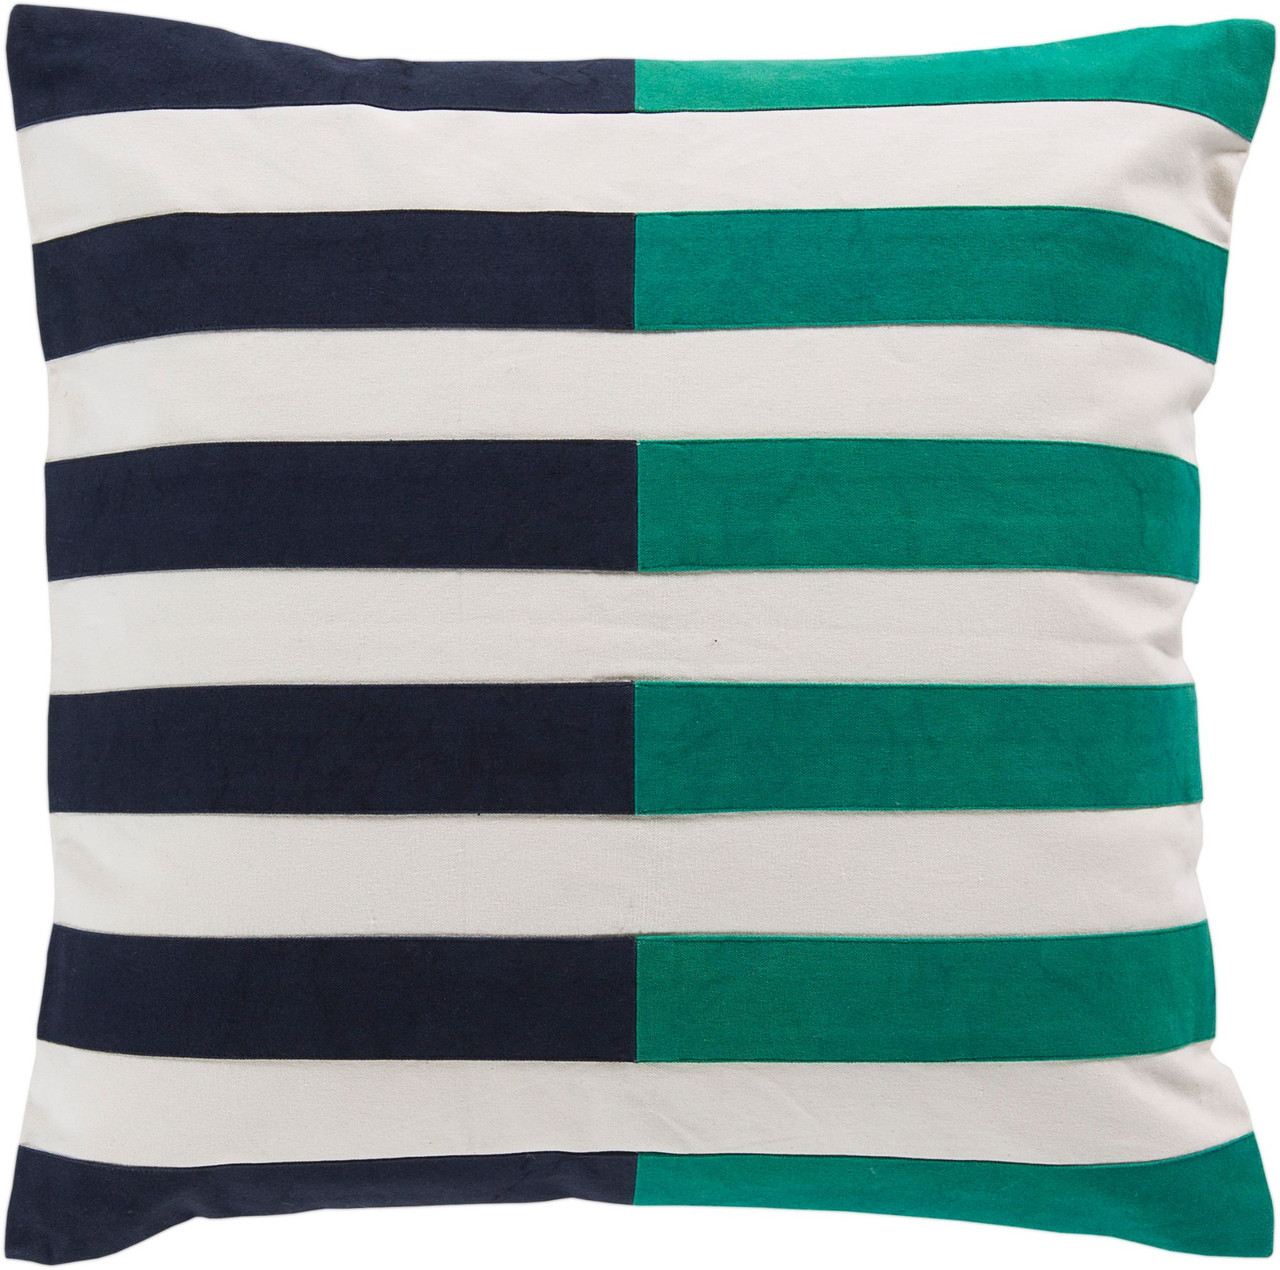 20 navy blue and emerald green striped square throw pillow cover